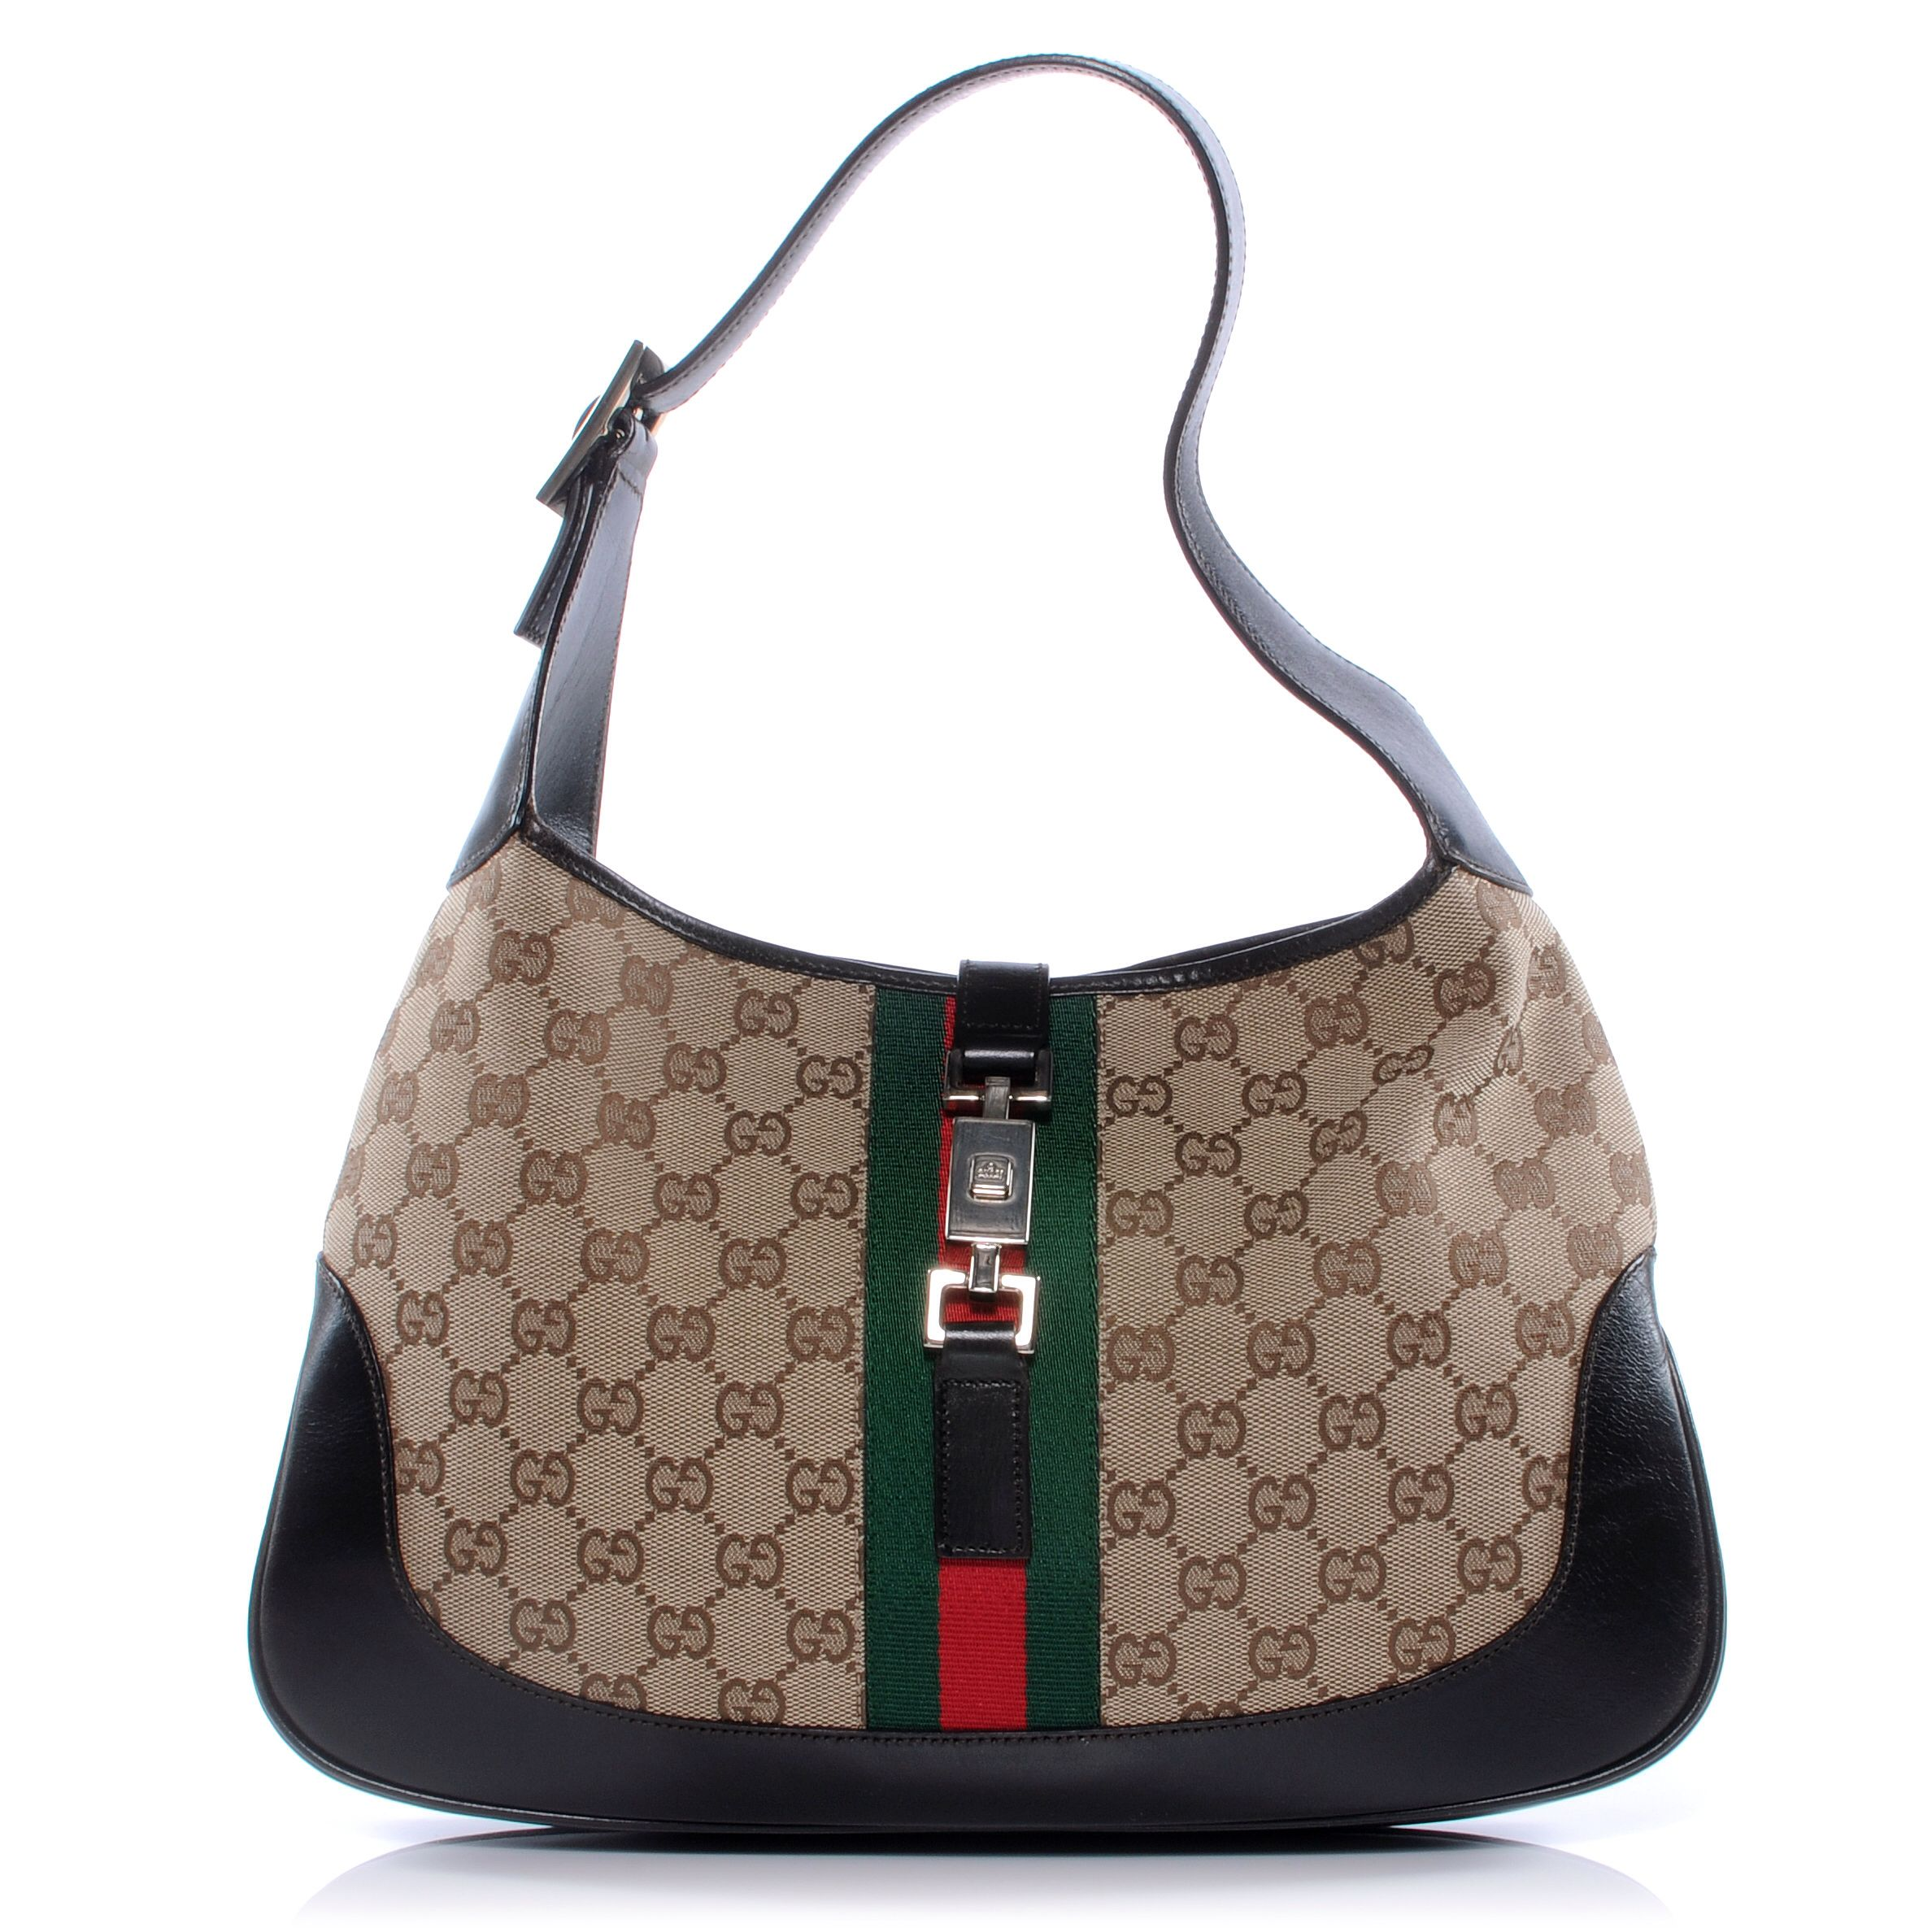 eadebdf28894 This is an authentic GUCCI Monogram Jackie O Hobo. A structured hobo  crafted of traditional brown on beige Gucci GG canvas. features  complimentary chocolate ...